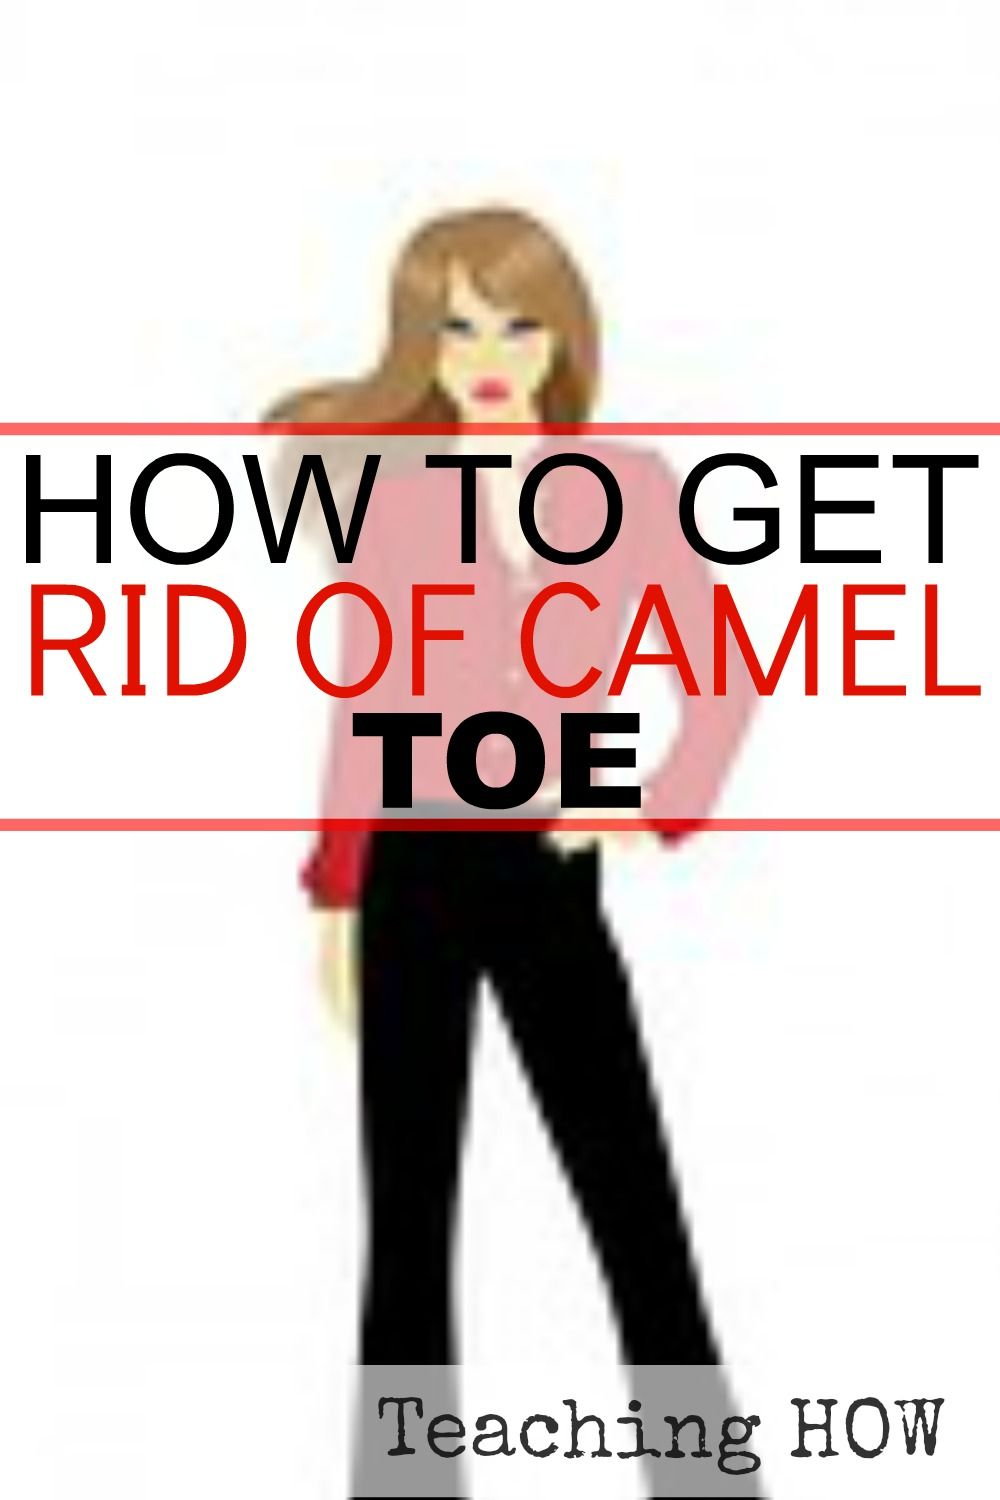 how to get rid of camel toe